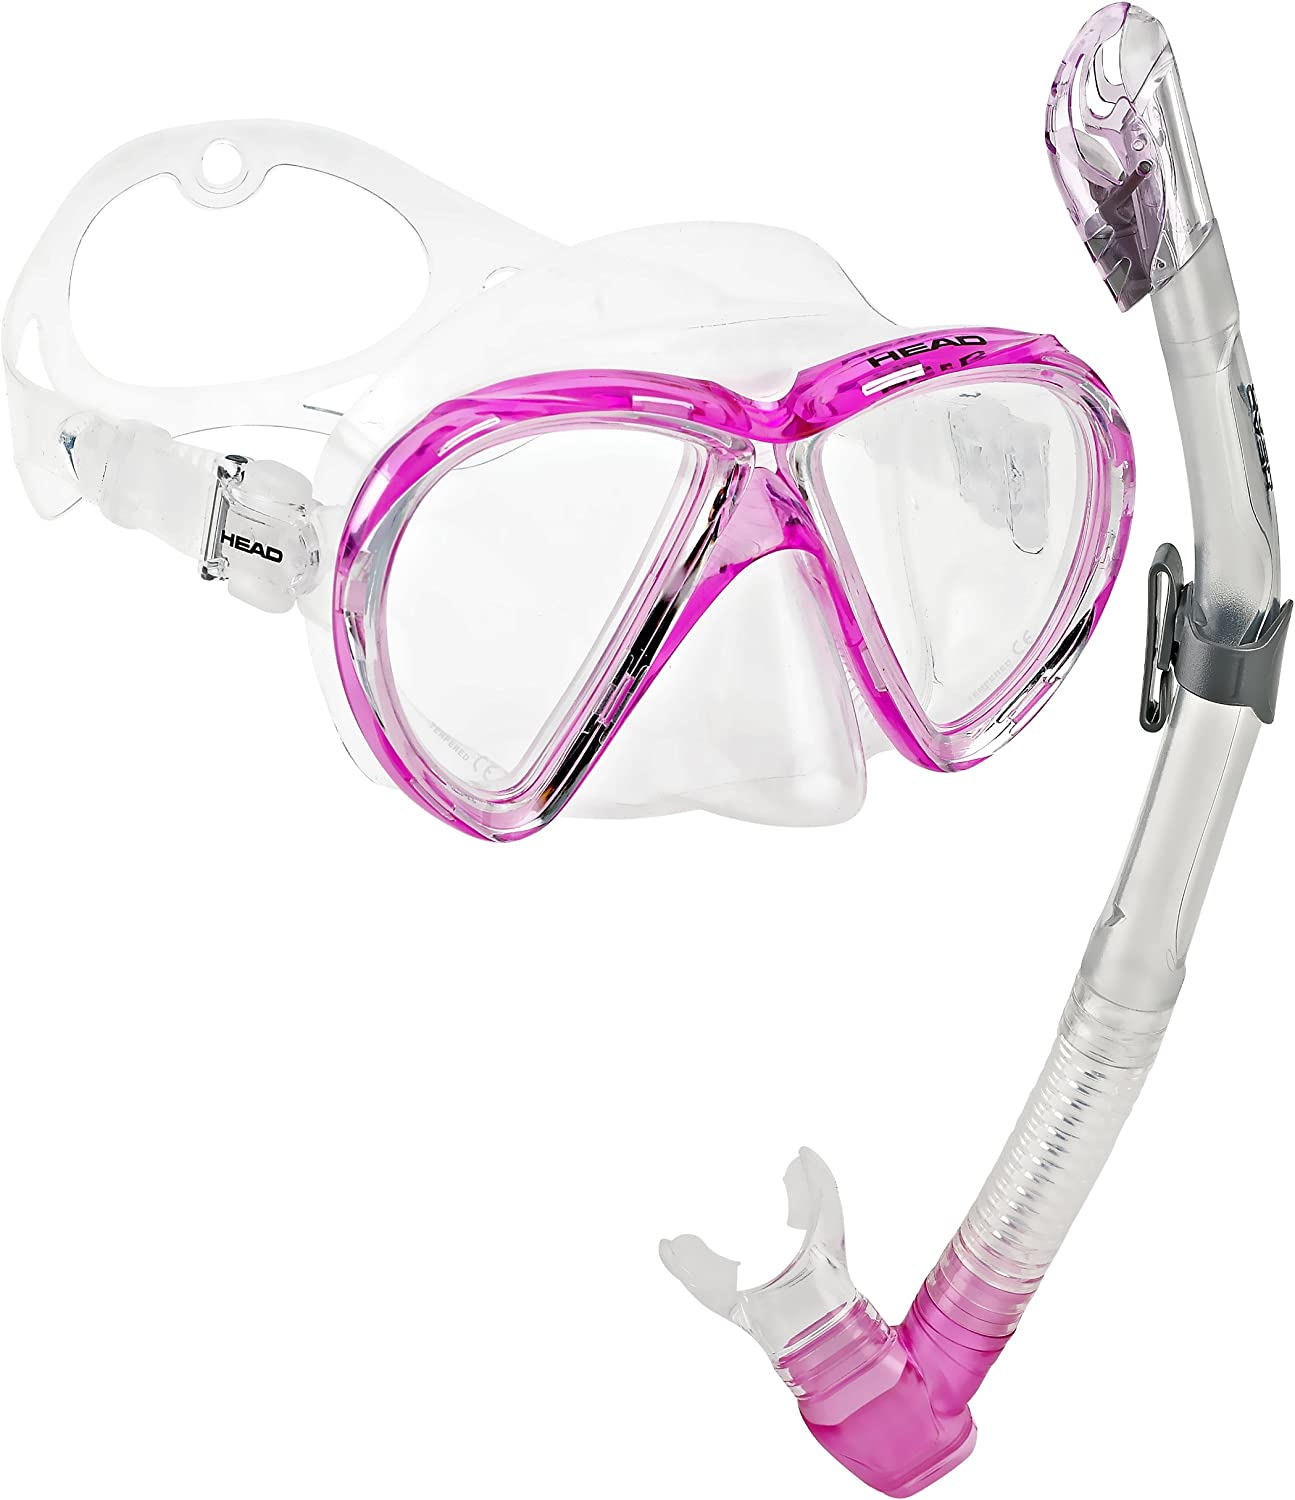 HEAD by Mares Scuba Snorkeling Dive Mask Dry Snorkel Set, Pink White